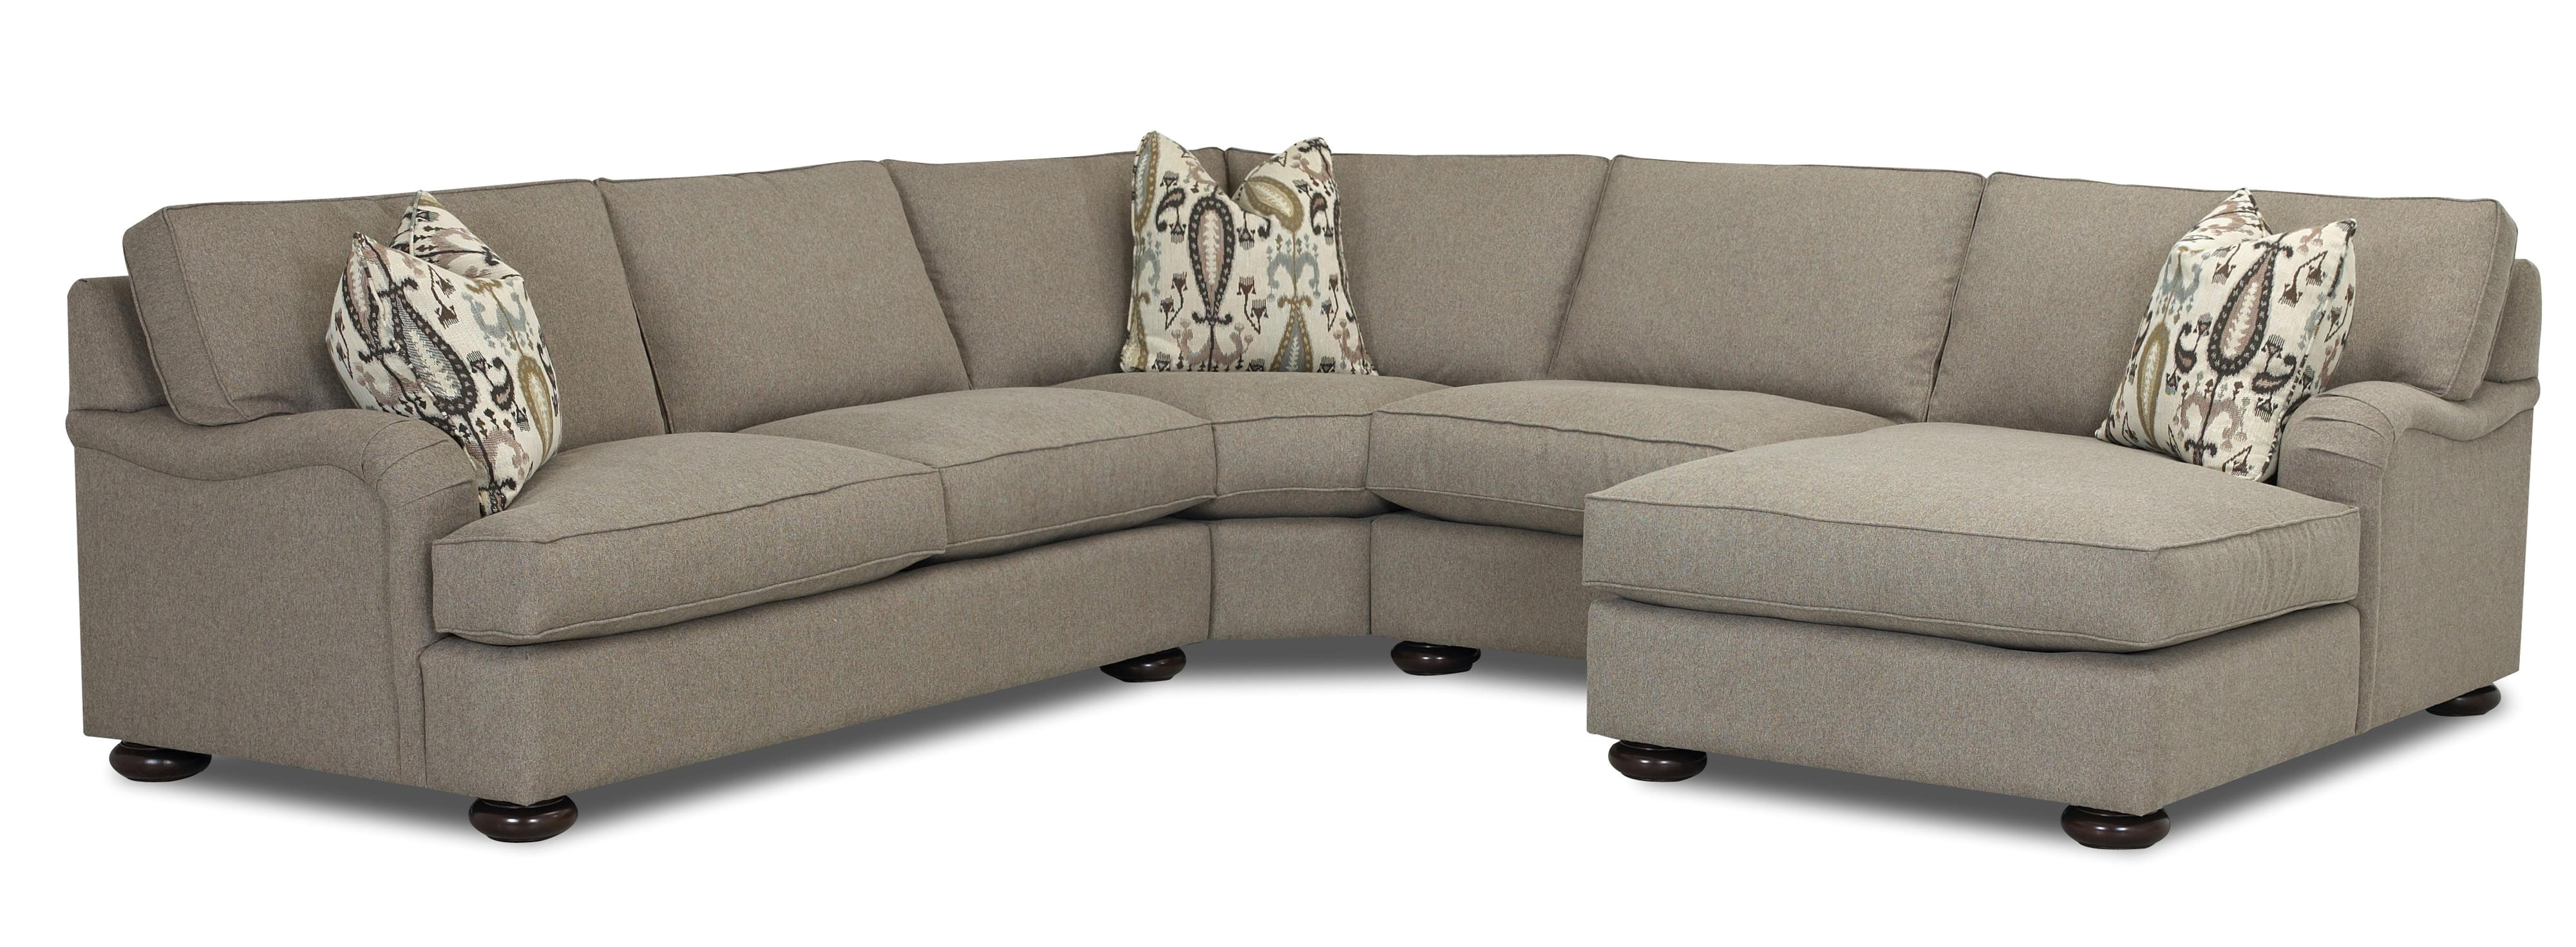 klaussner killian traditional four seater sectional sofa with chaise ahfa sofa sectional dealer locator